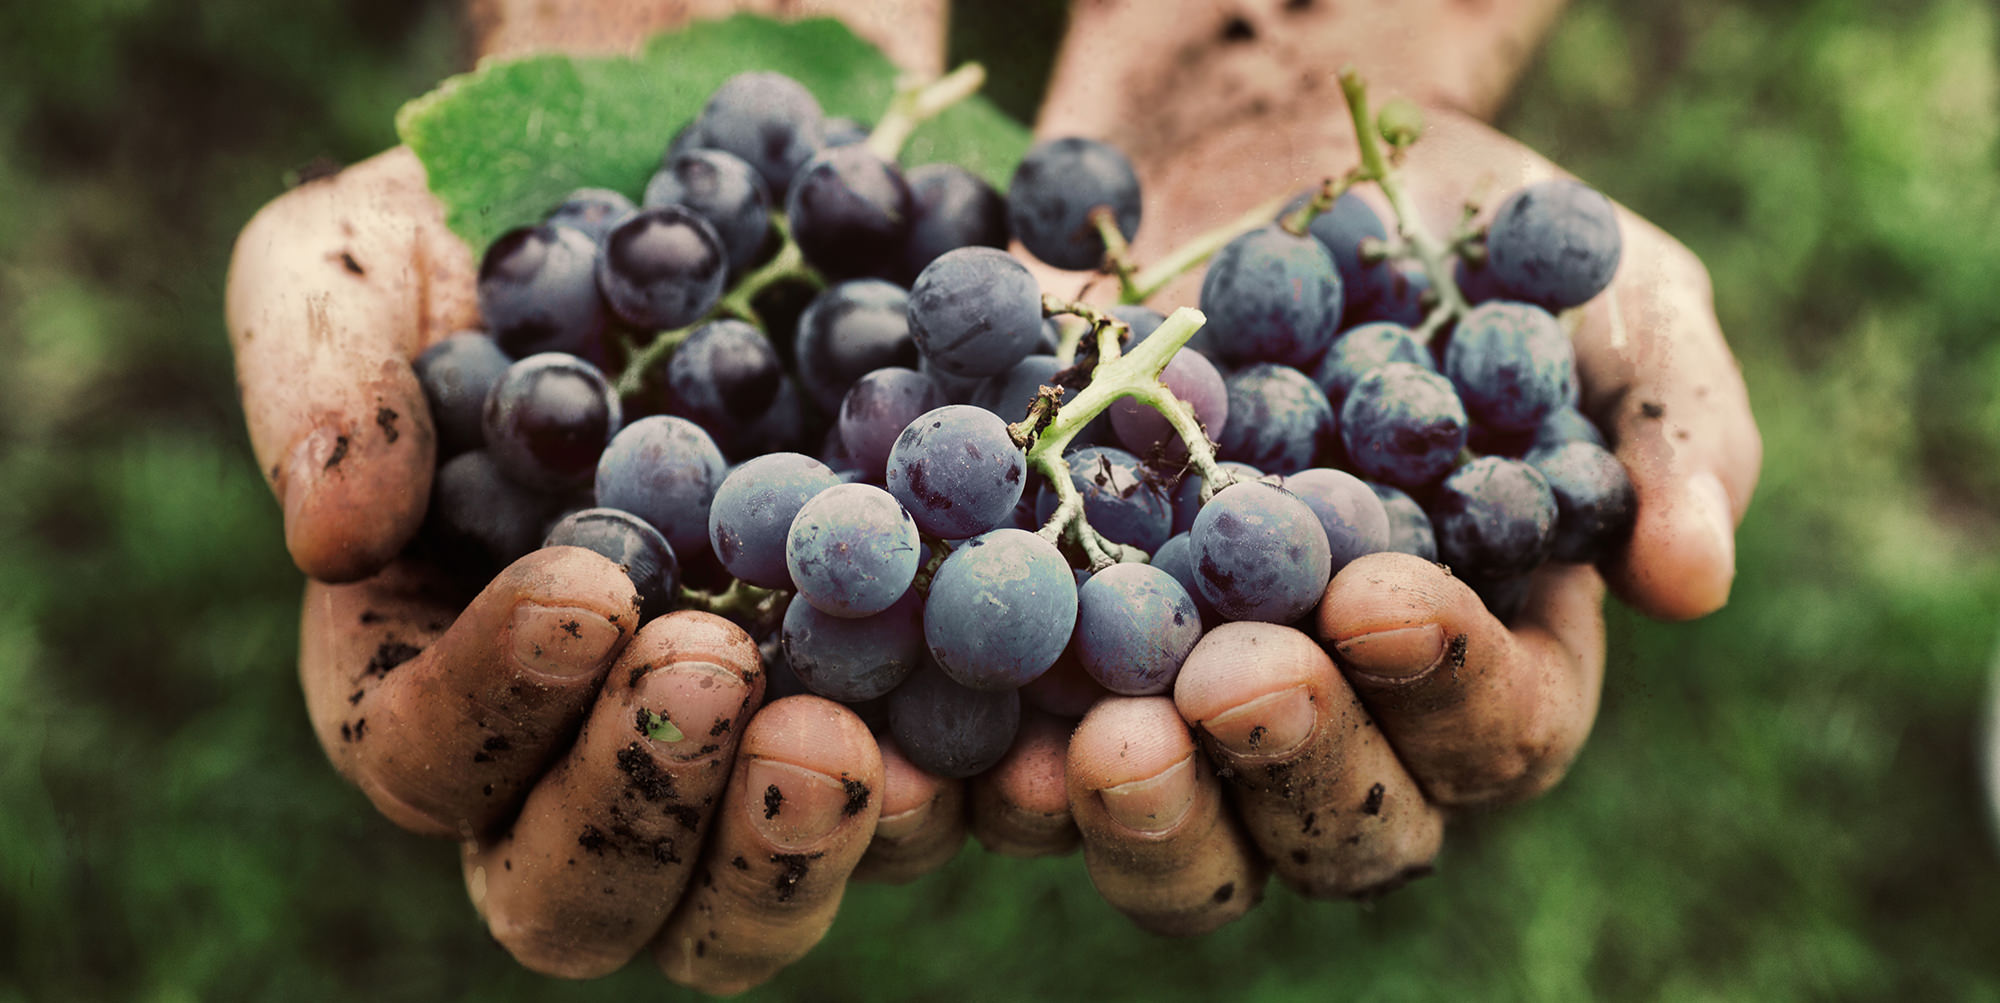 Antioxidants Part I: What is the Value of